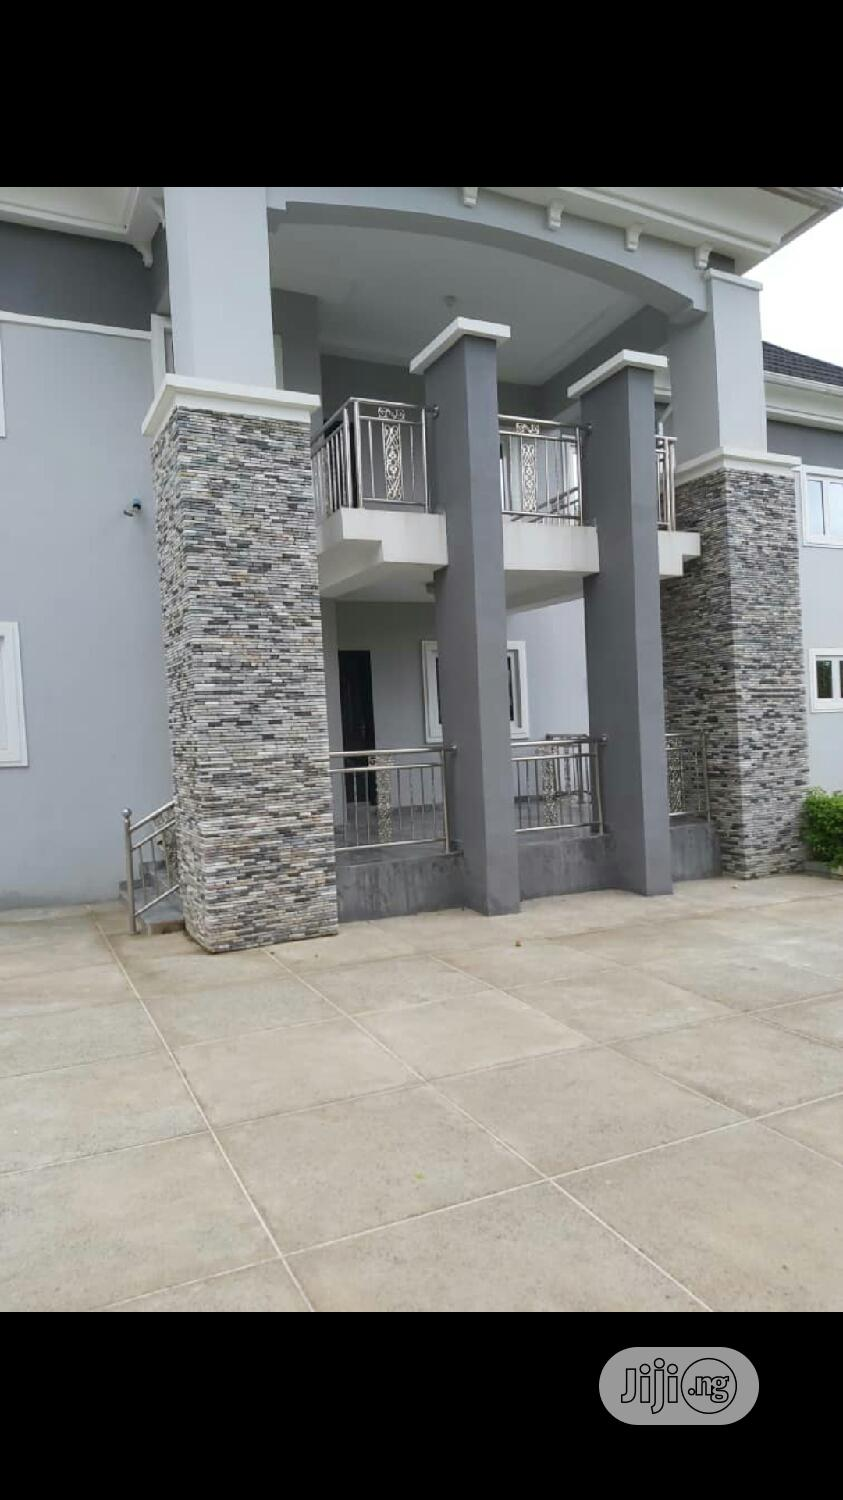 Standard Duplex House for Sale in Abuja | Houses & Apartments For Sale for sale in Asokoro, Abuja (FCT) State, Nigeria